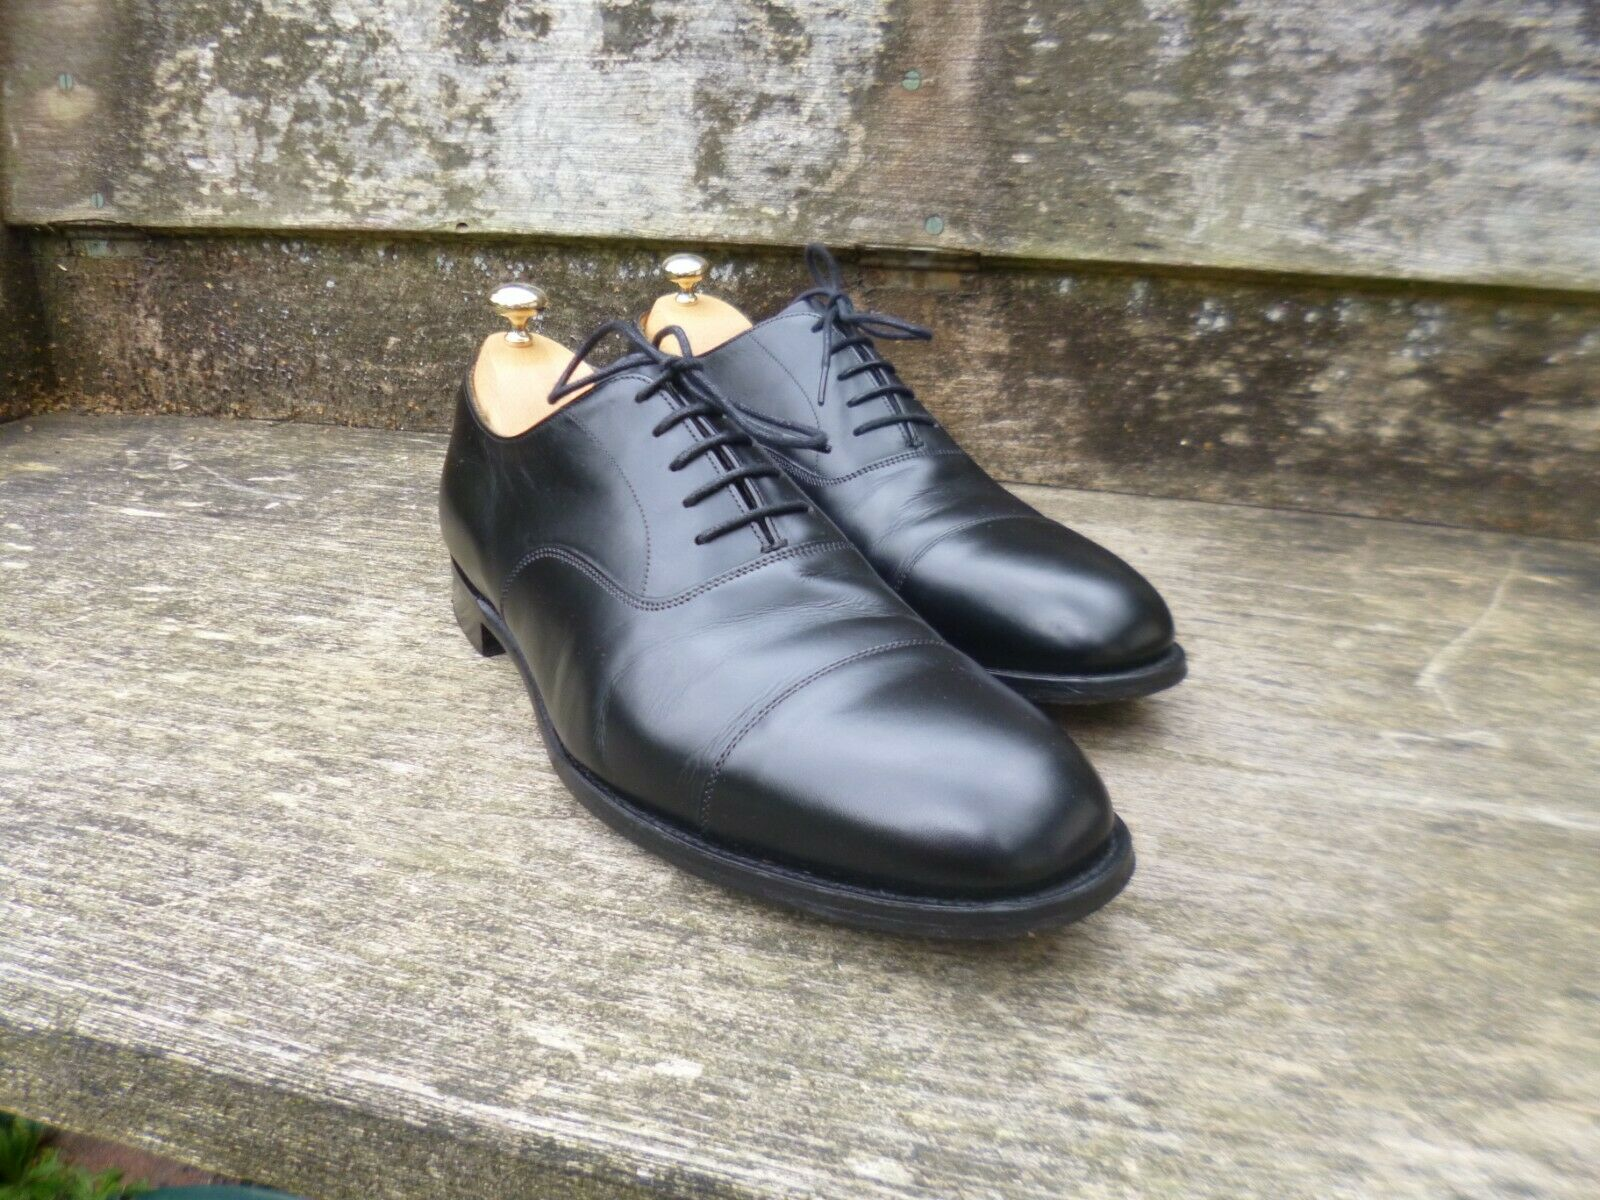 CHEANEY   CHURCH OXFORD schuhe – schwarz – UK 10.5 –  EXCELLENT CONDITION    | Schön und charmant